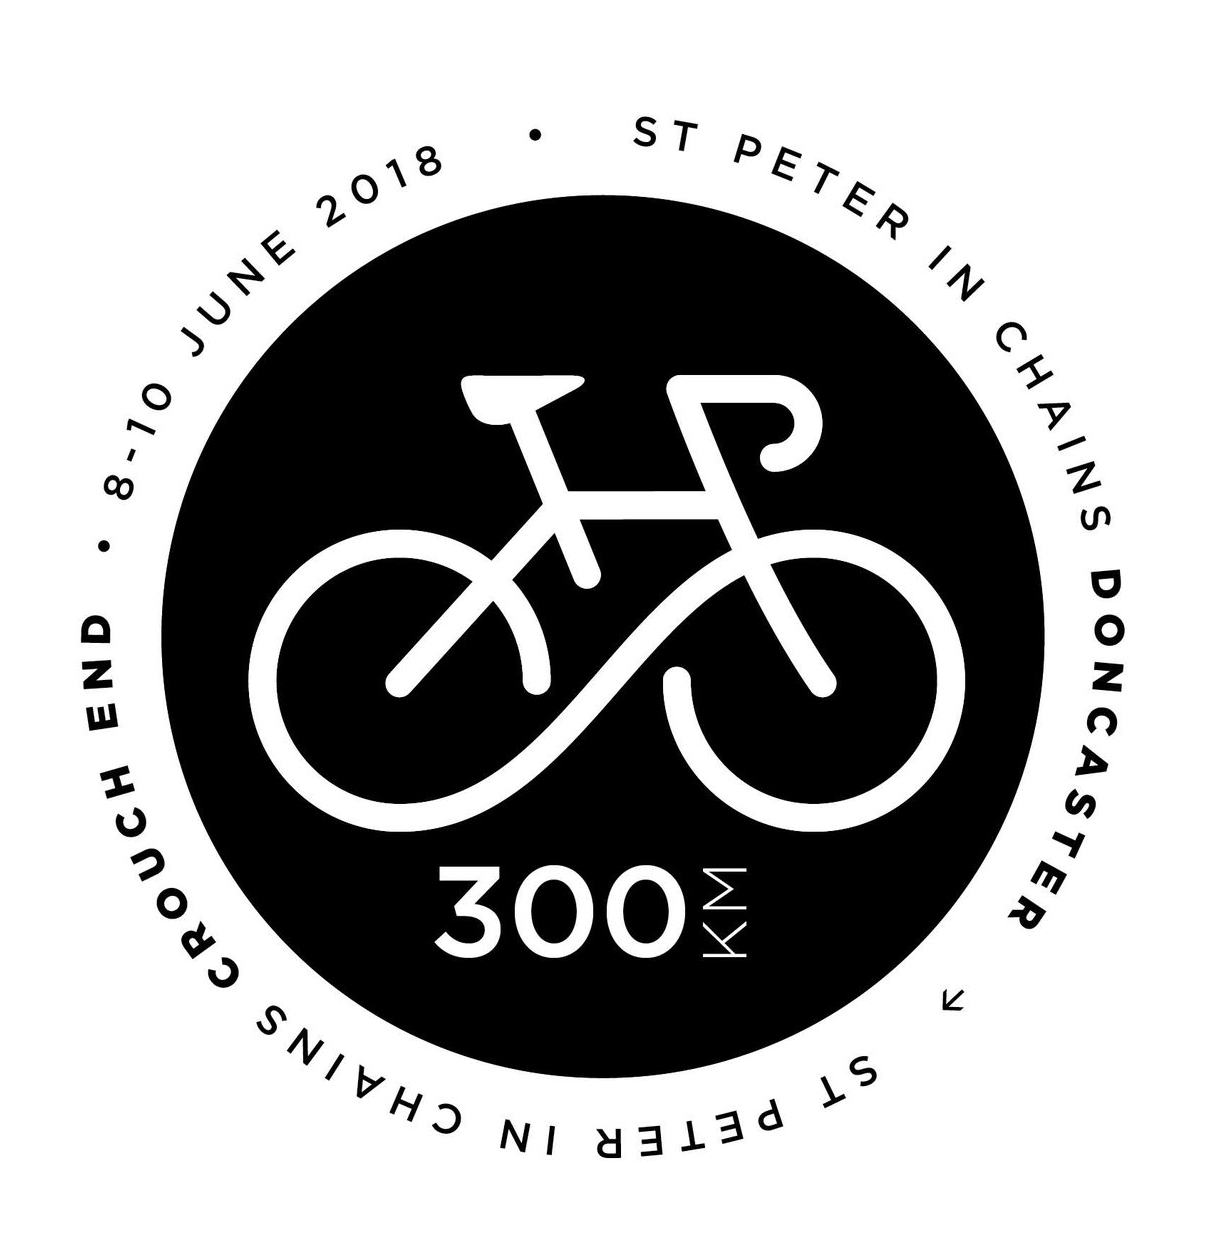 St Peter's Charity Bike Ride 2018